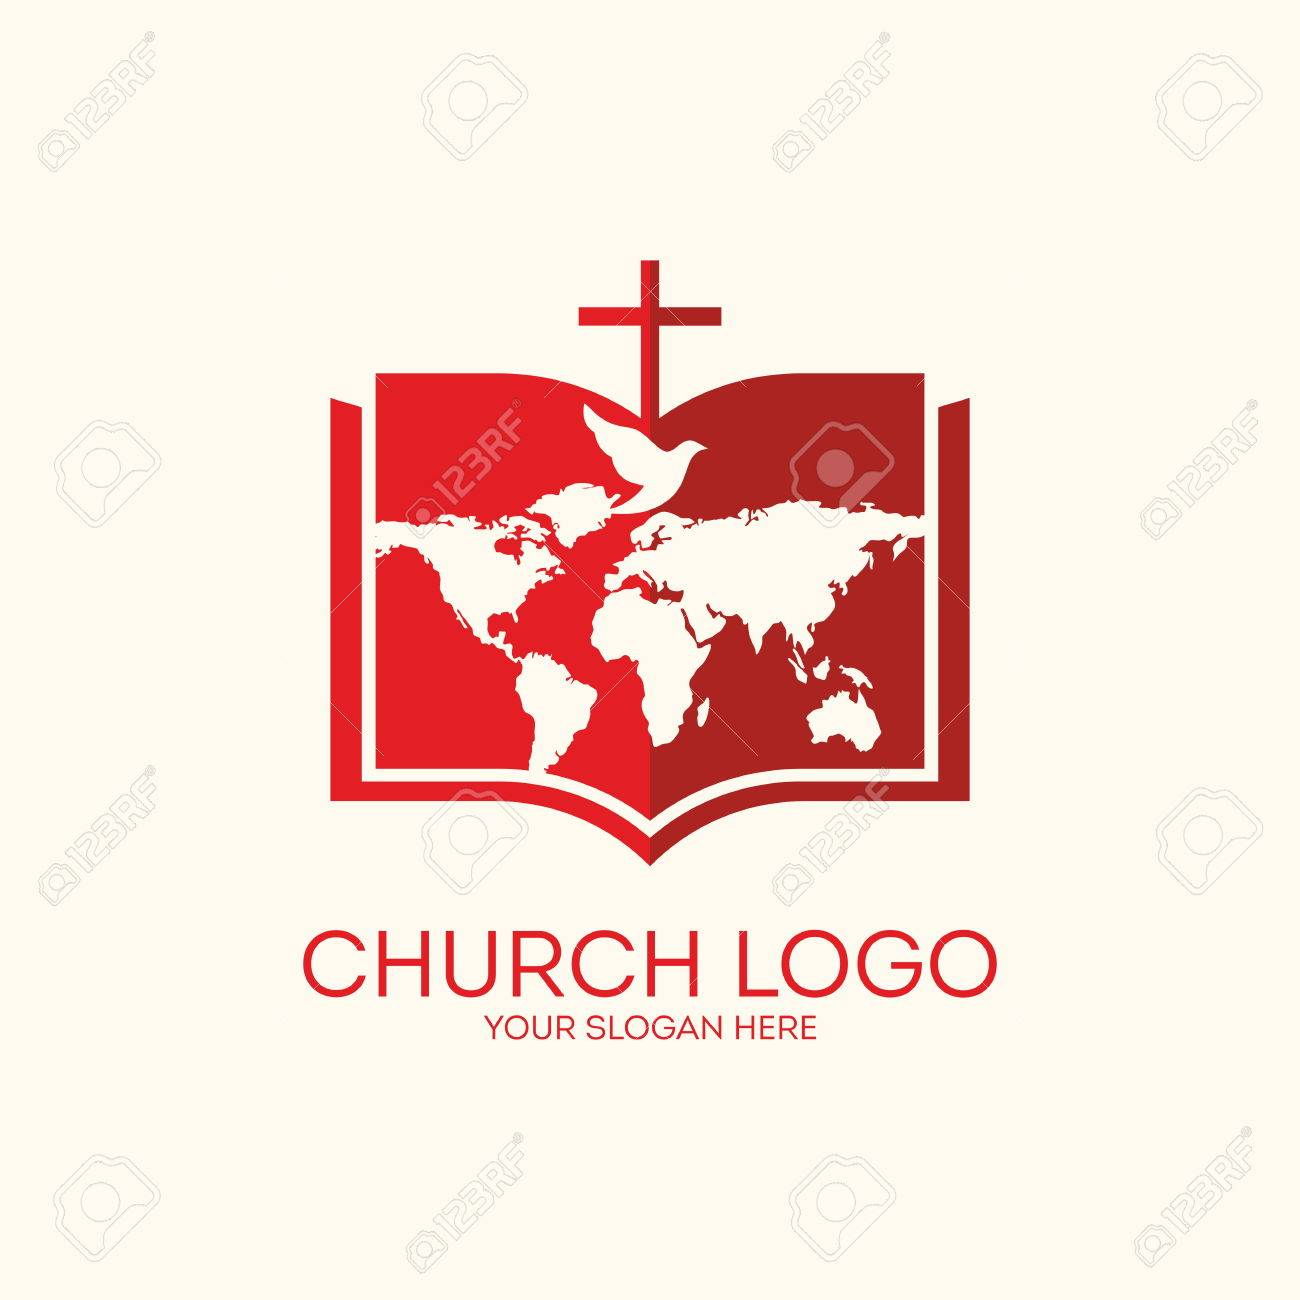 Church logo bible pages world map and cross royalty free cliparts church logo bible pages world map and cross stock vector 46647788 gumiabroncs Gallery